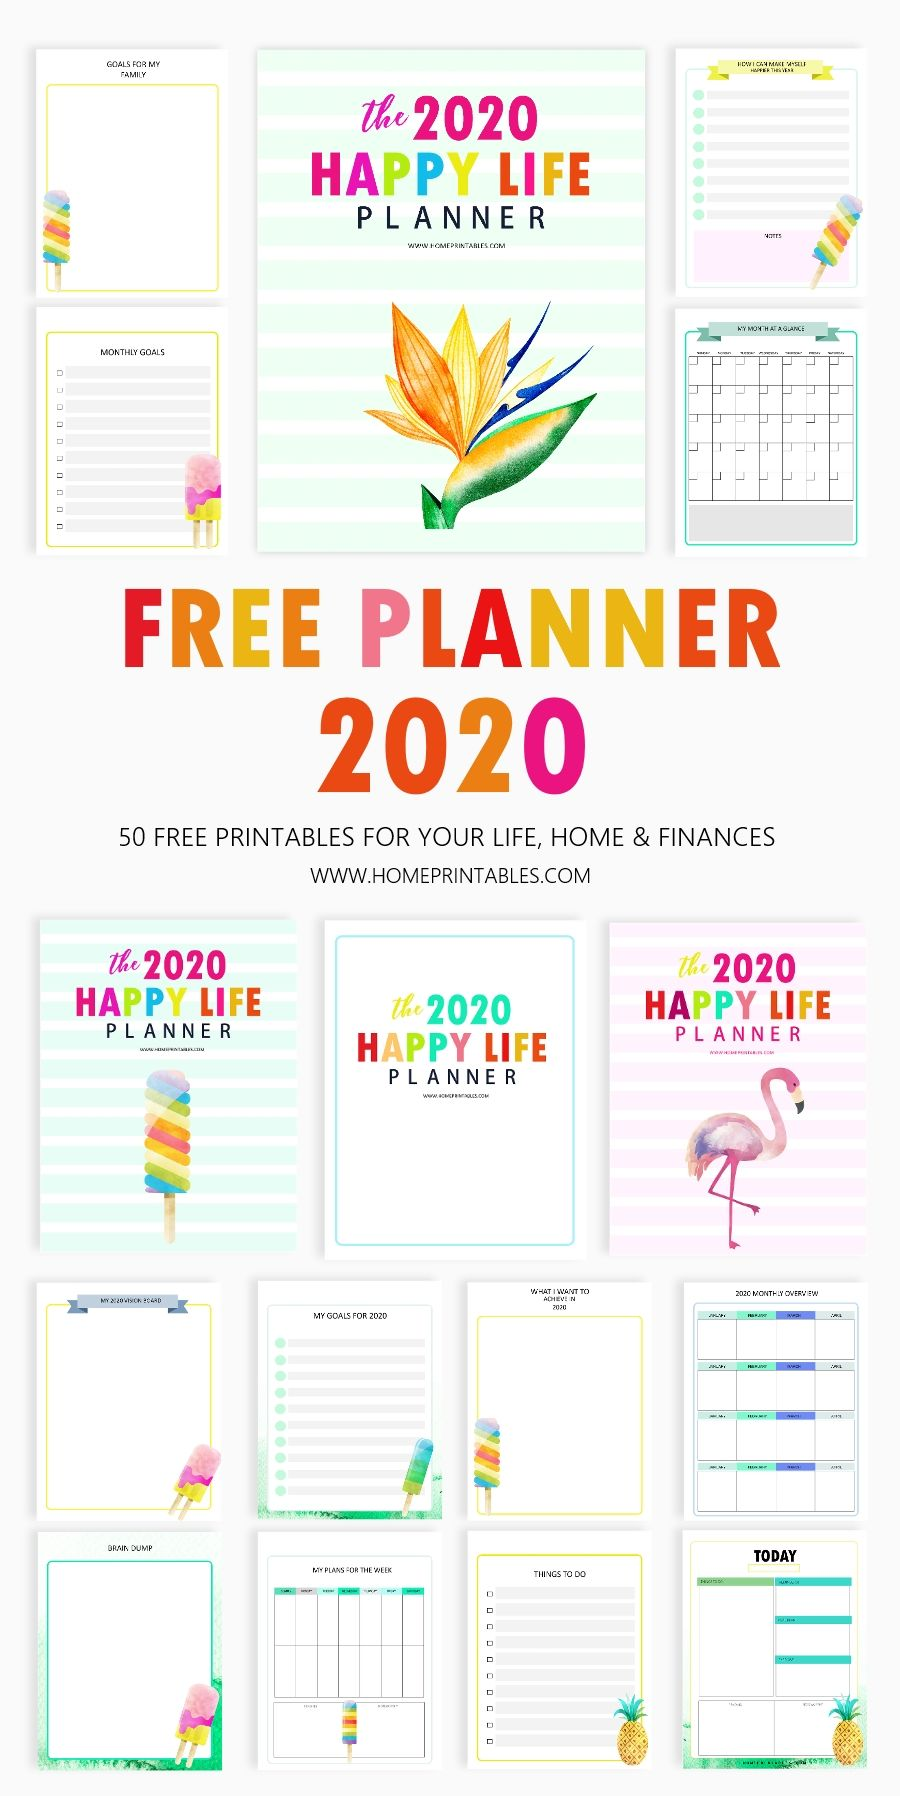 Happy Life Planner: The BEST Free Printable 2020 Planner in PDF